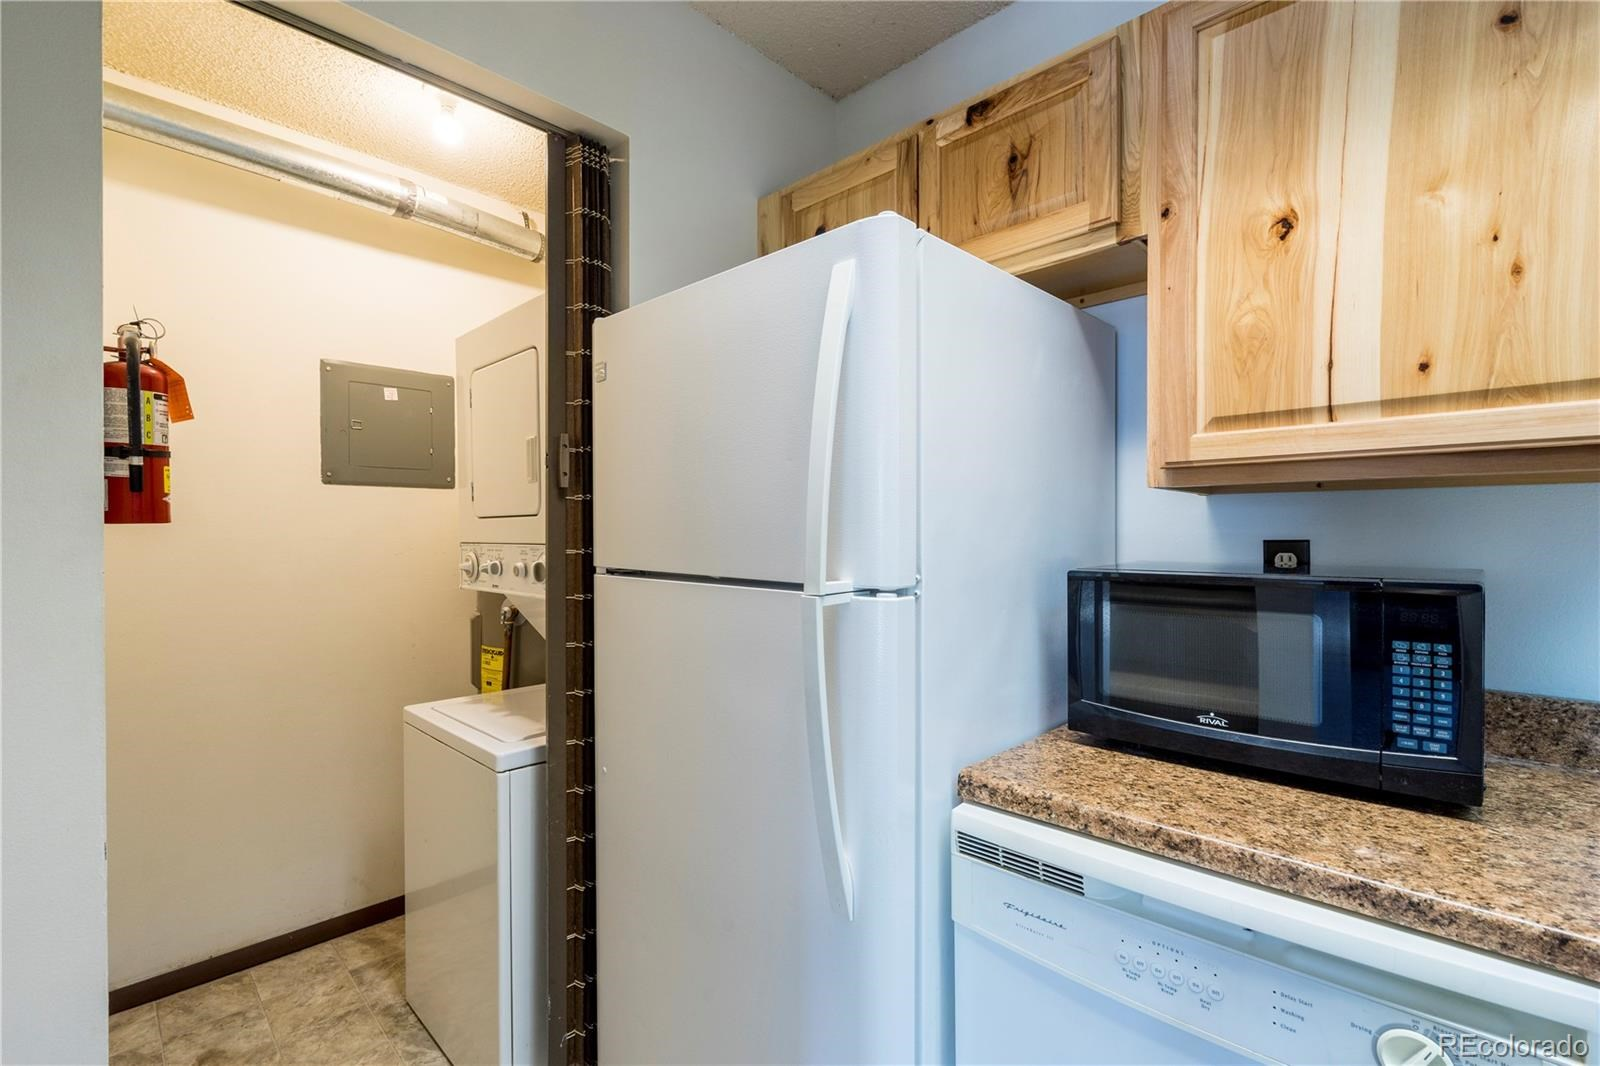 MLS# 5203269 - 4 - 1320 Athens Plaza #4, Steamboat Springs, CO 80487